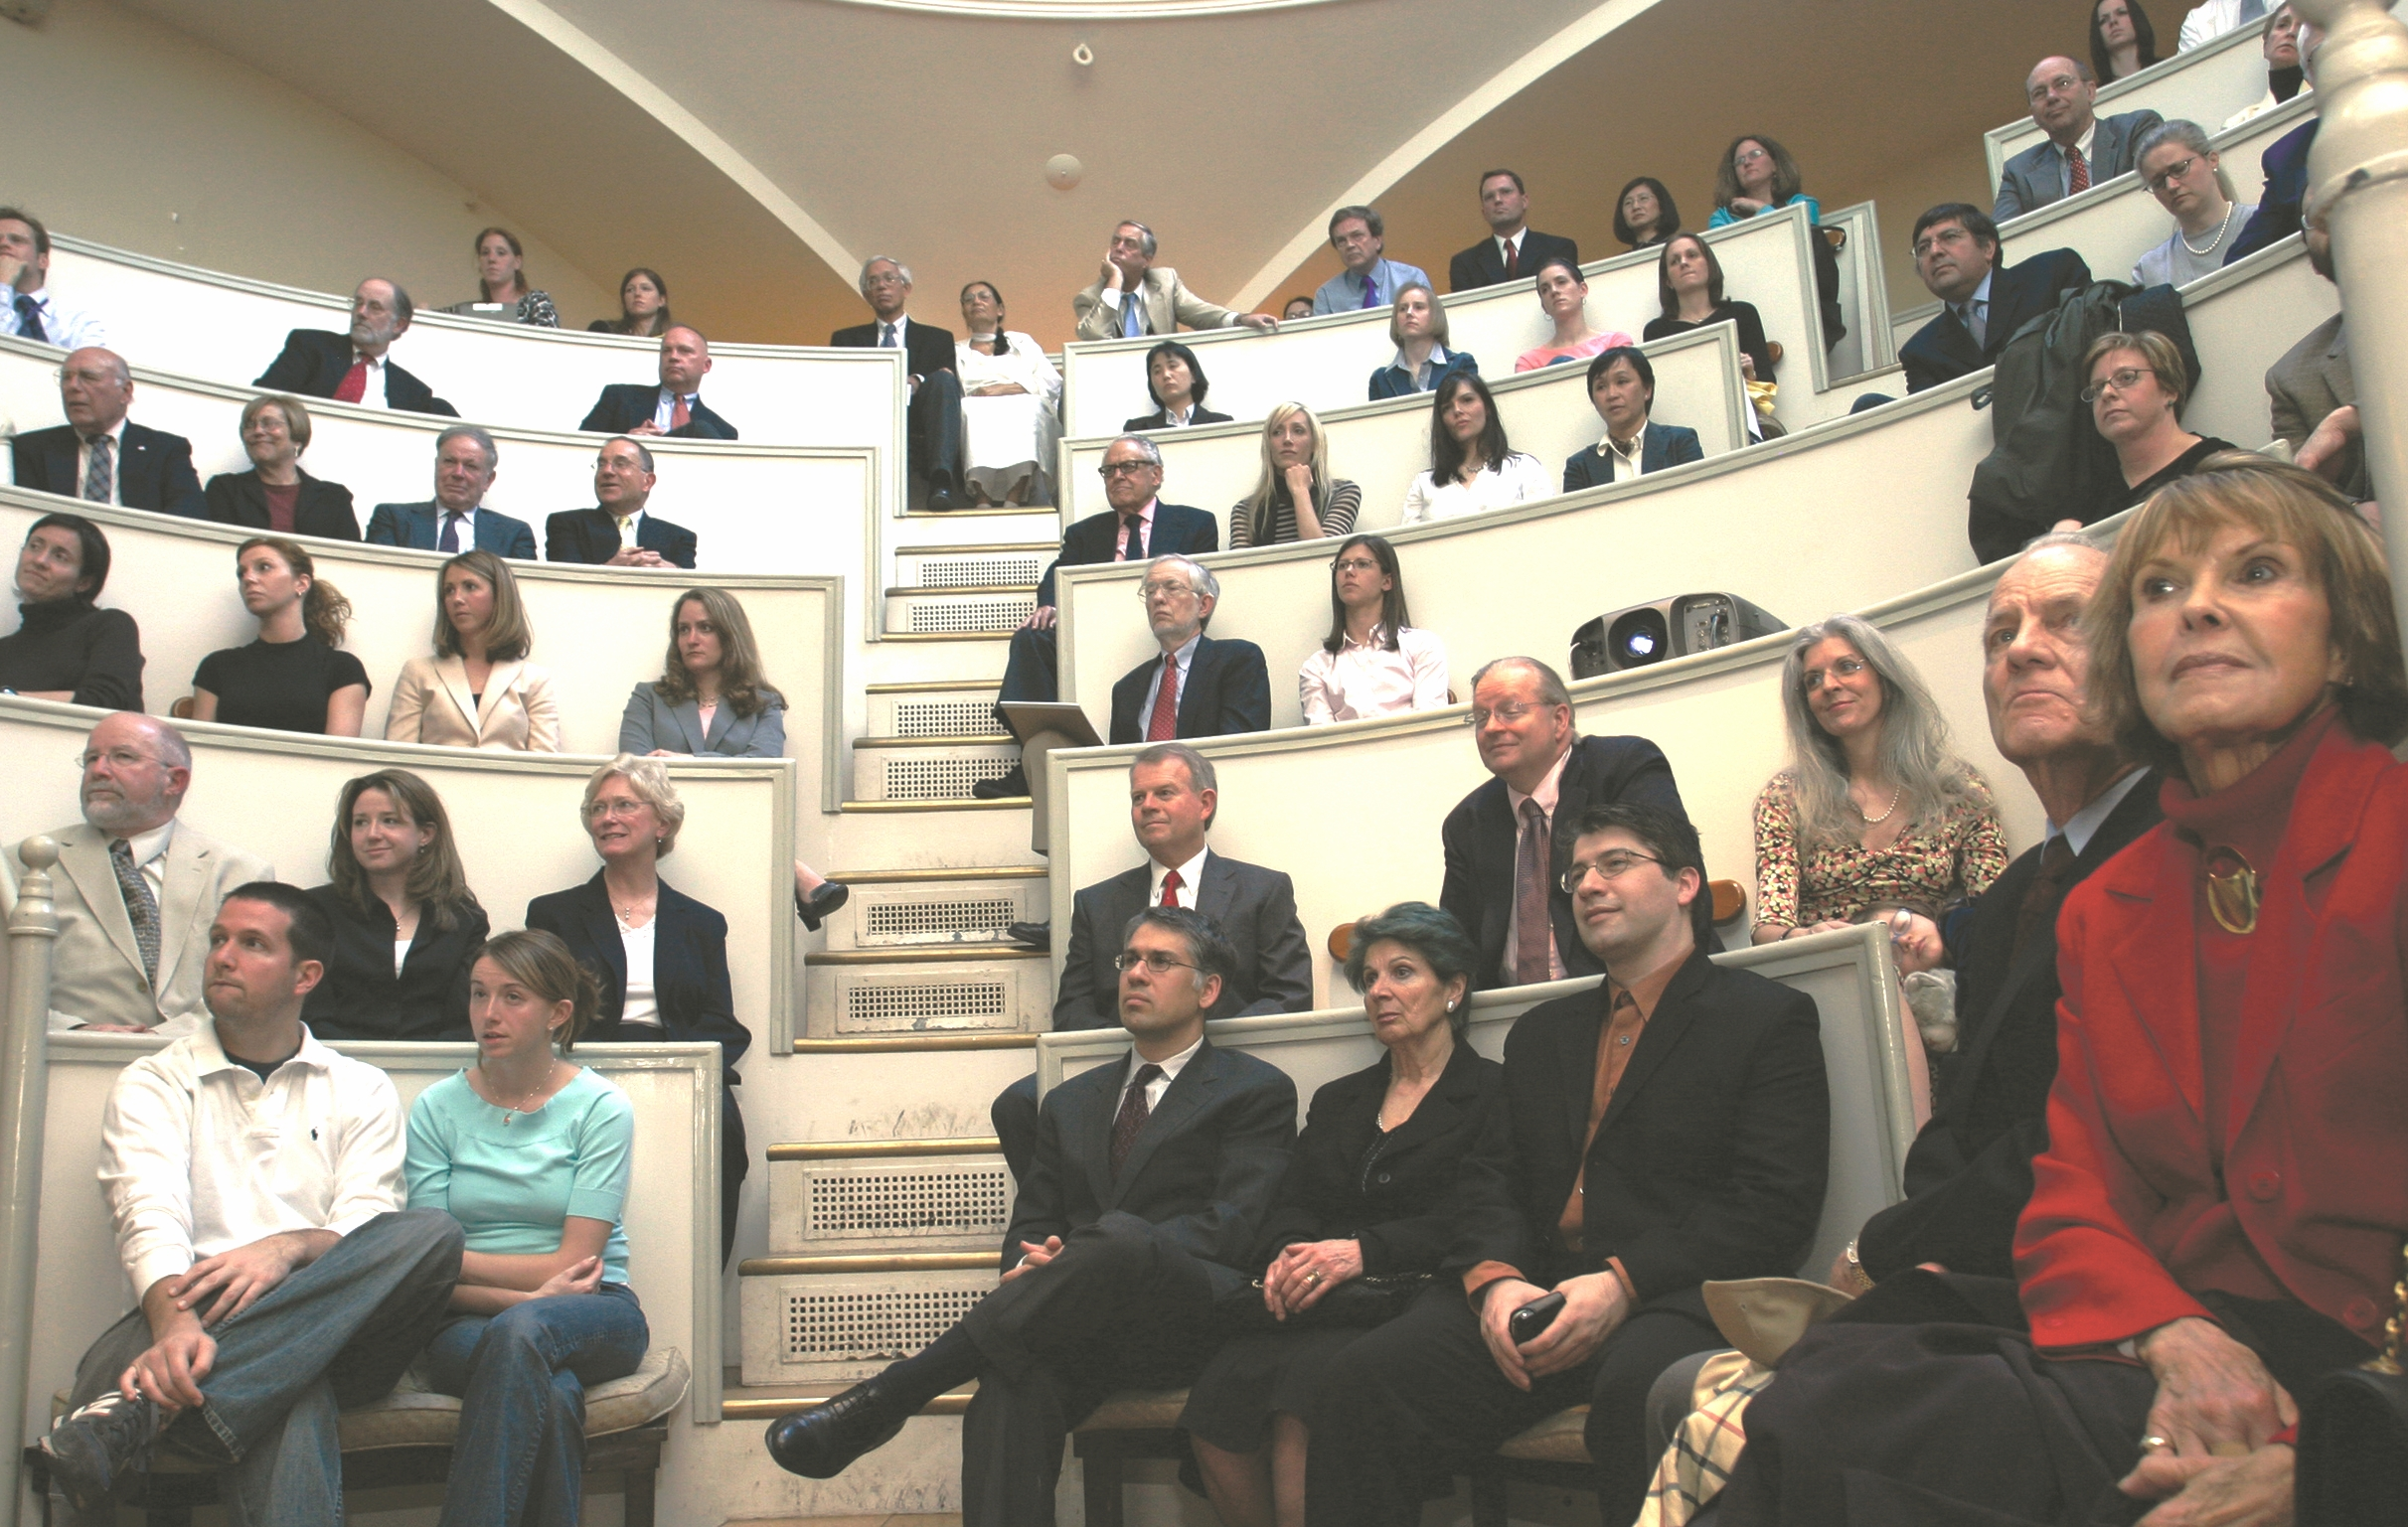 Attendees at the lecture in the famed Etherdome in the Bullfinch Building of the MGH.